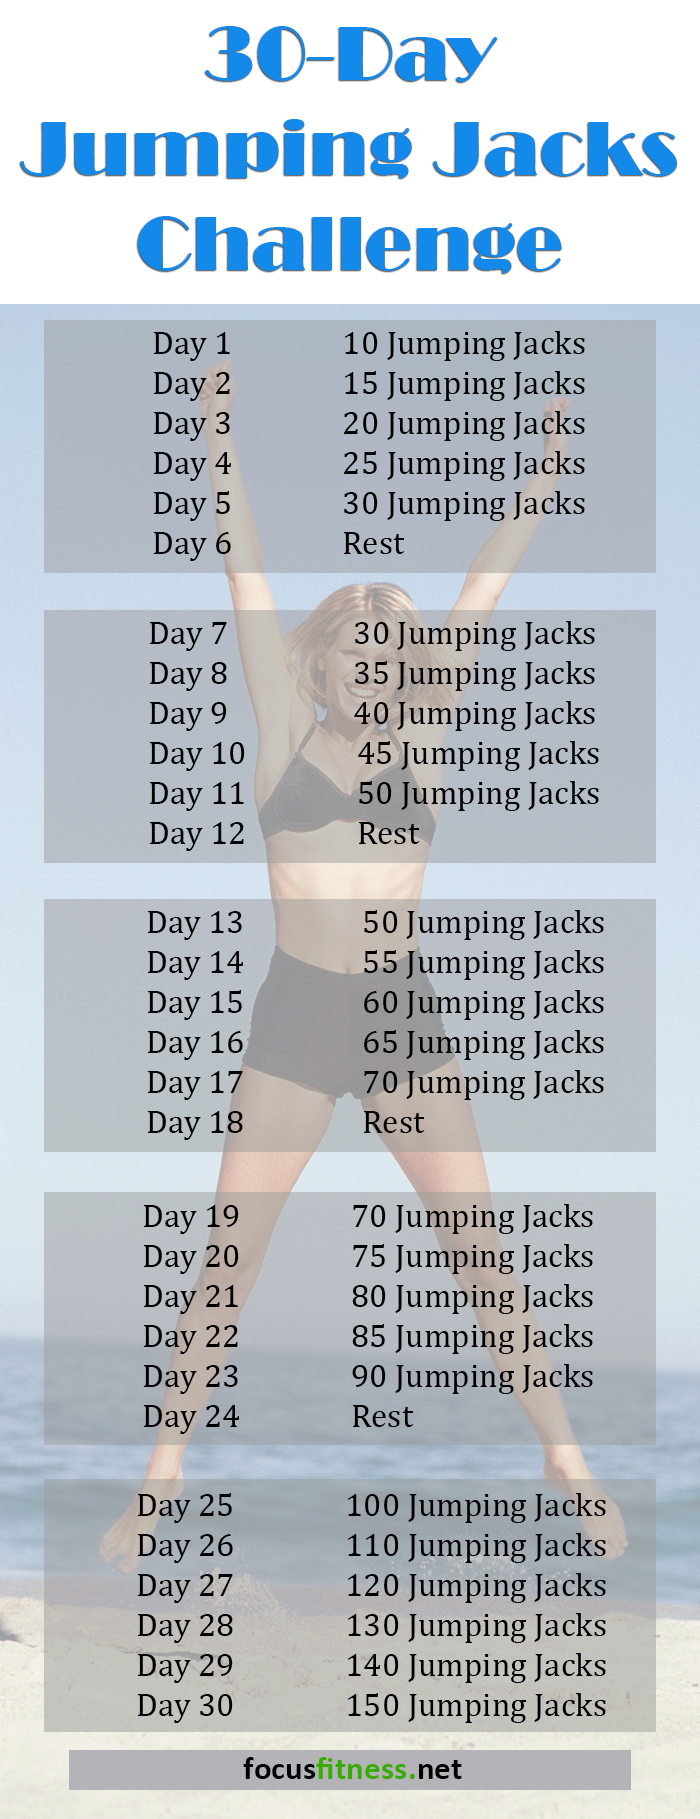 Jumping jacks 6 weeks pregnant